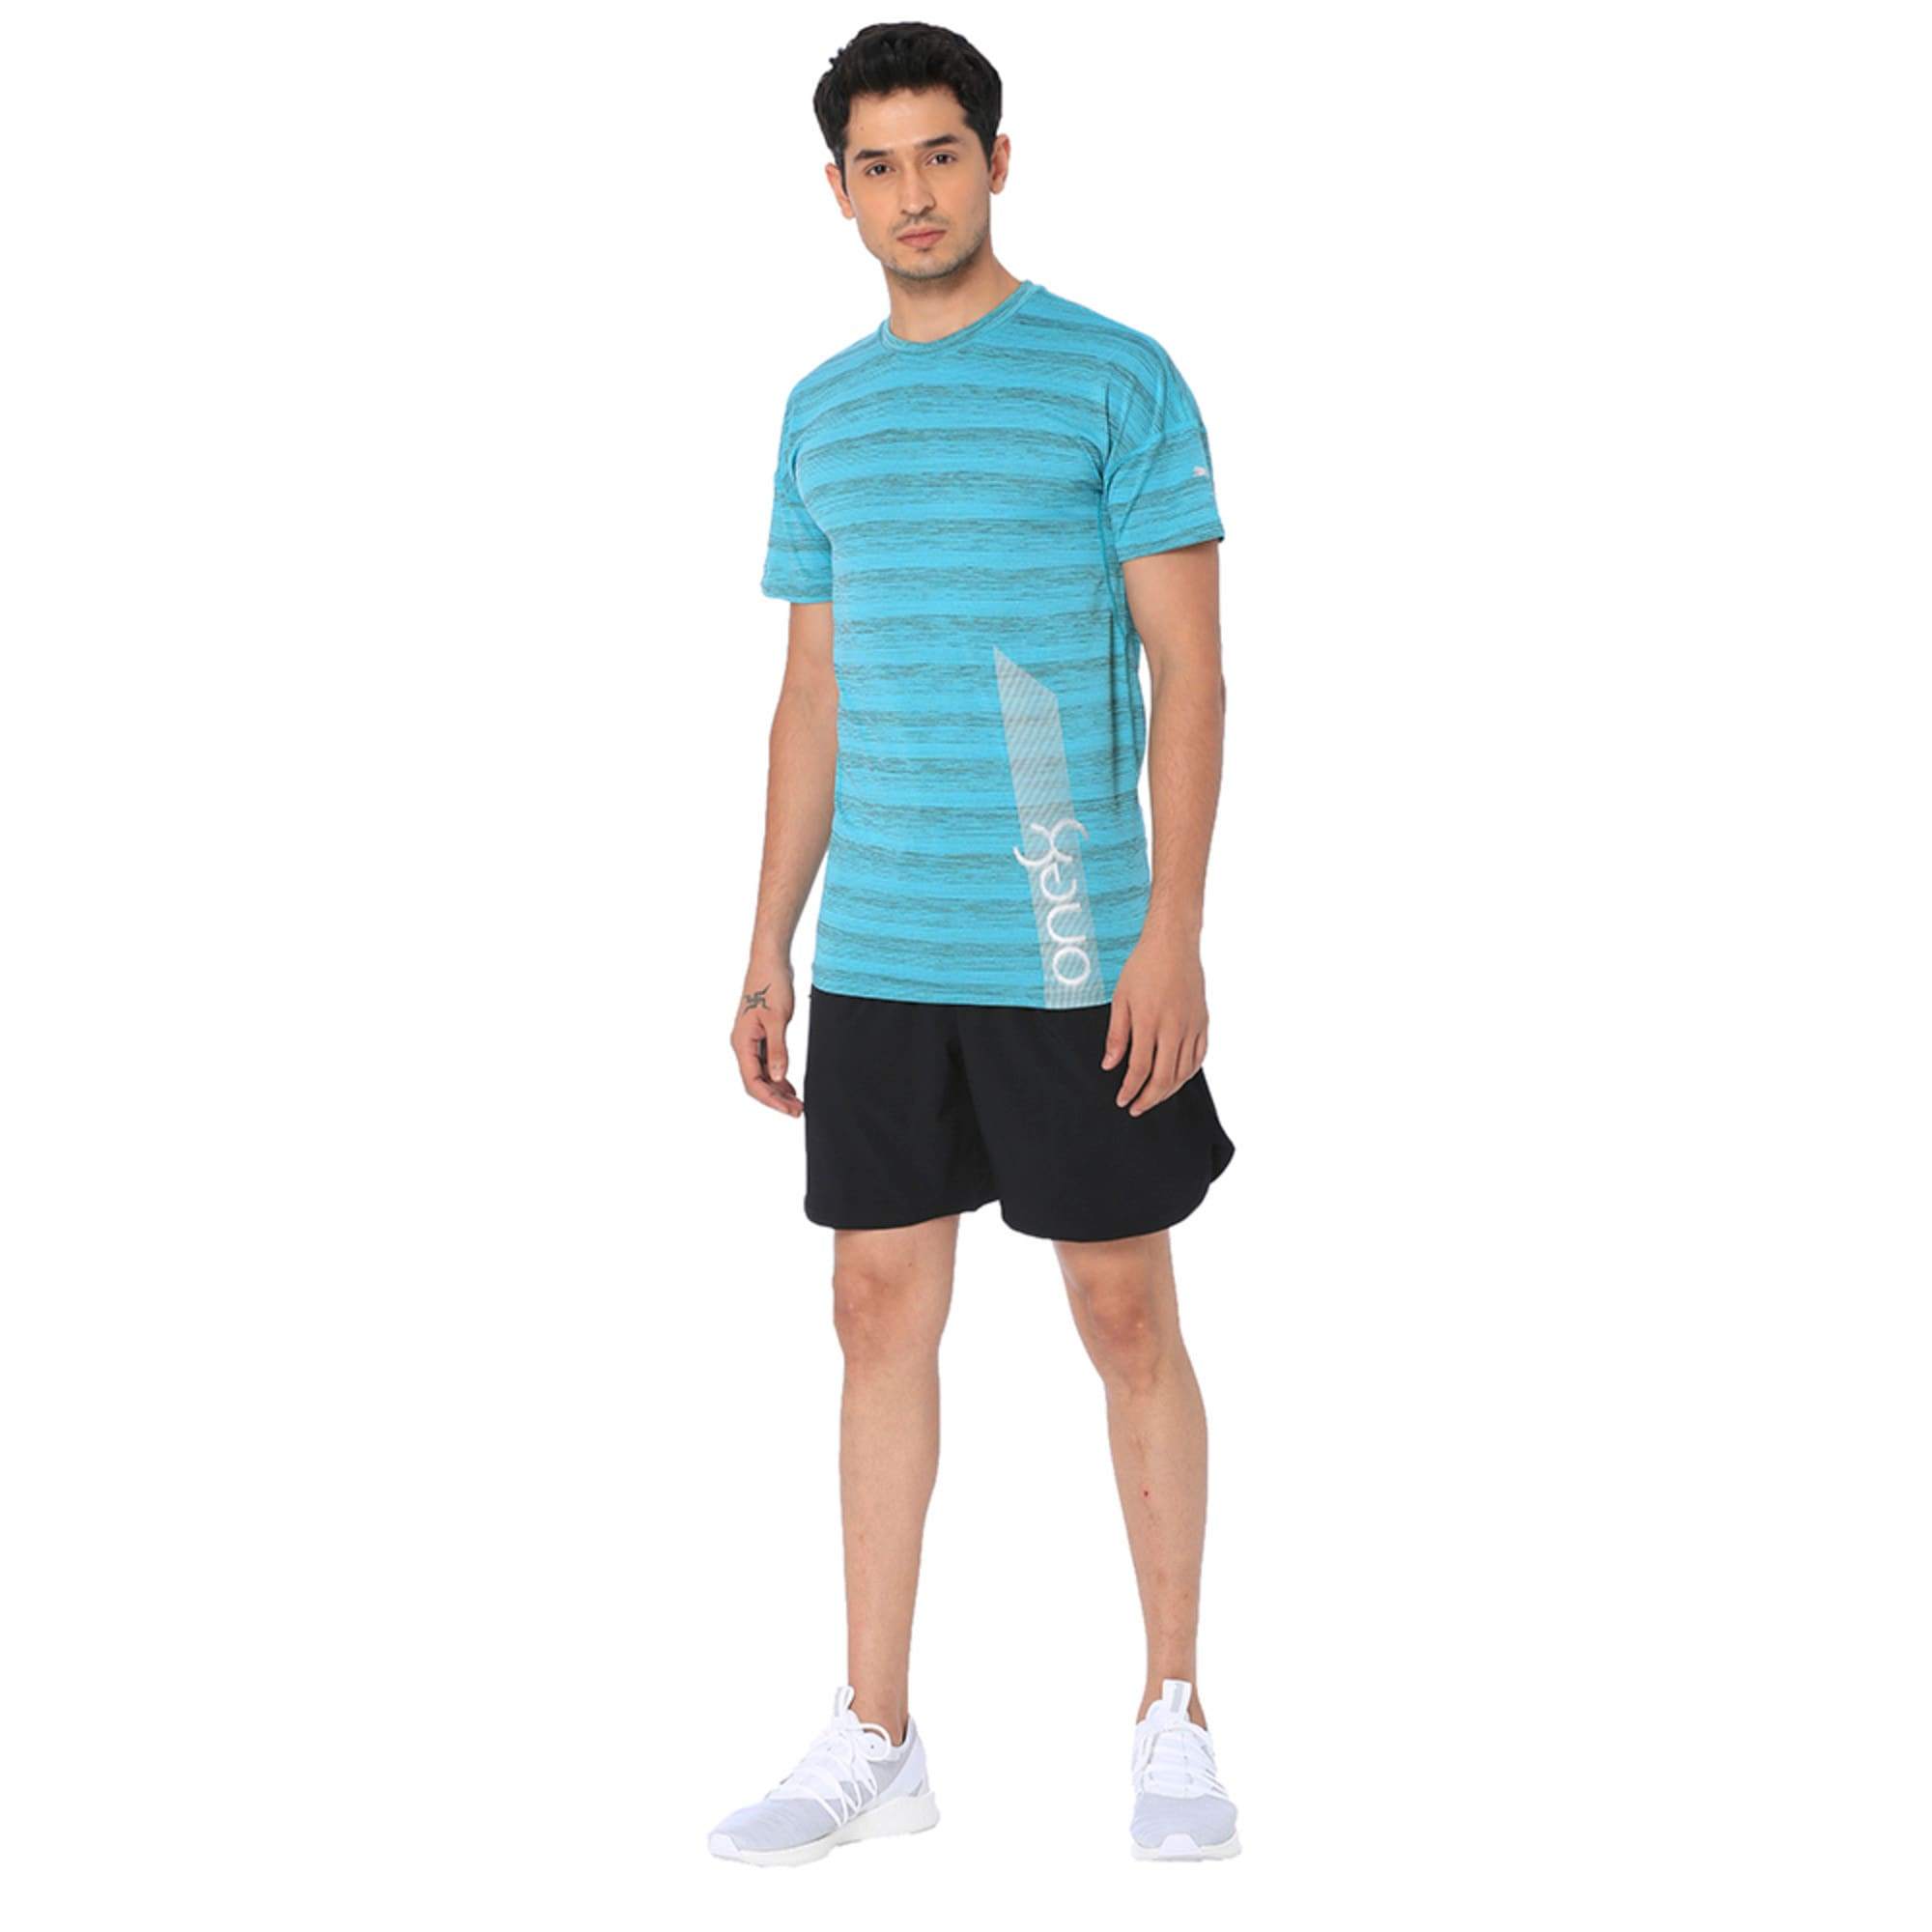 Thumbnail 1 of one8 Active Men's Printed Tee, Blue Turquoise Heather, medium-IND